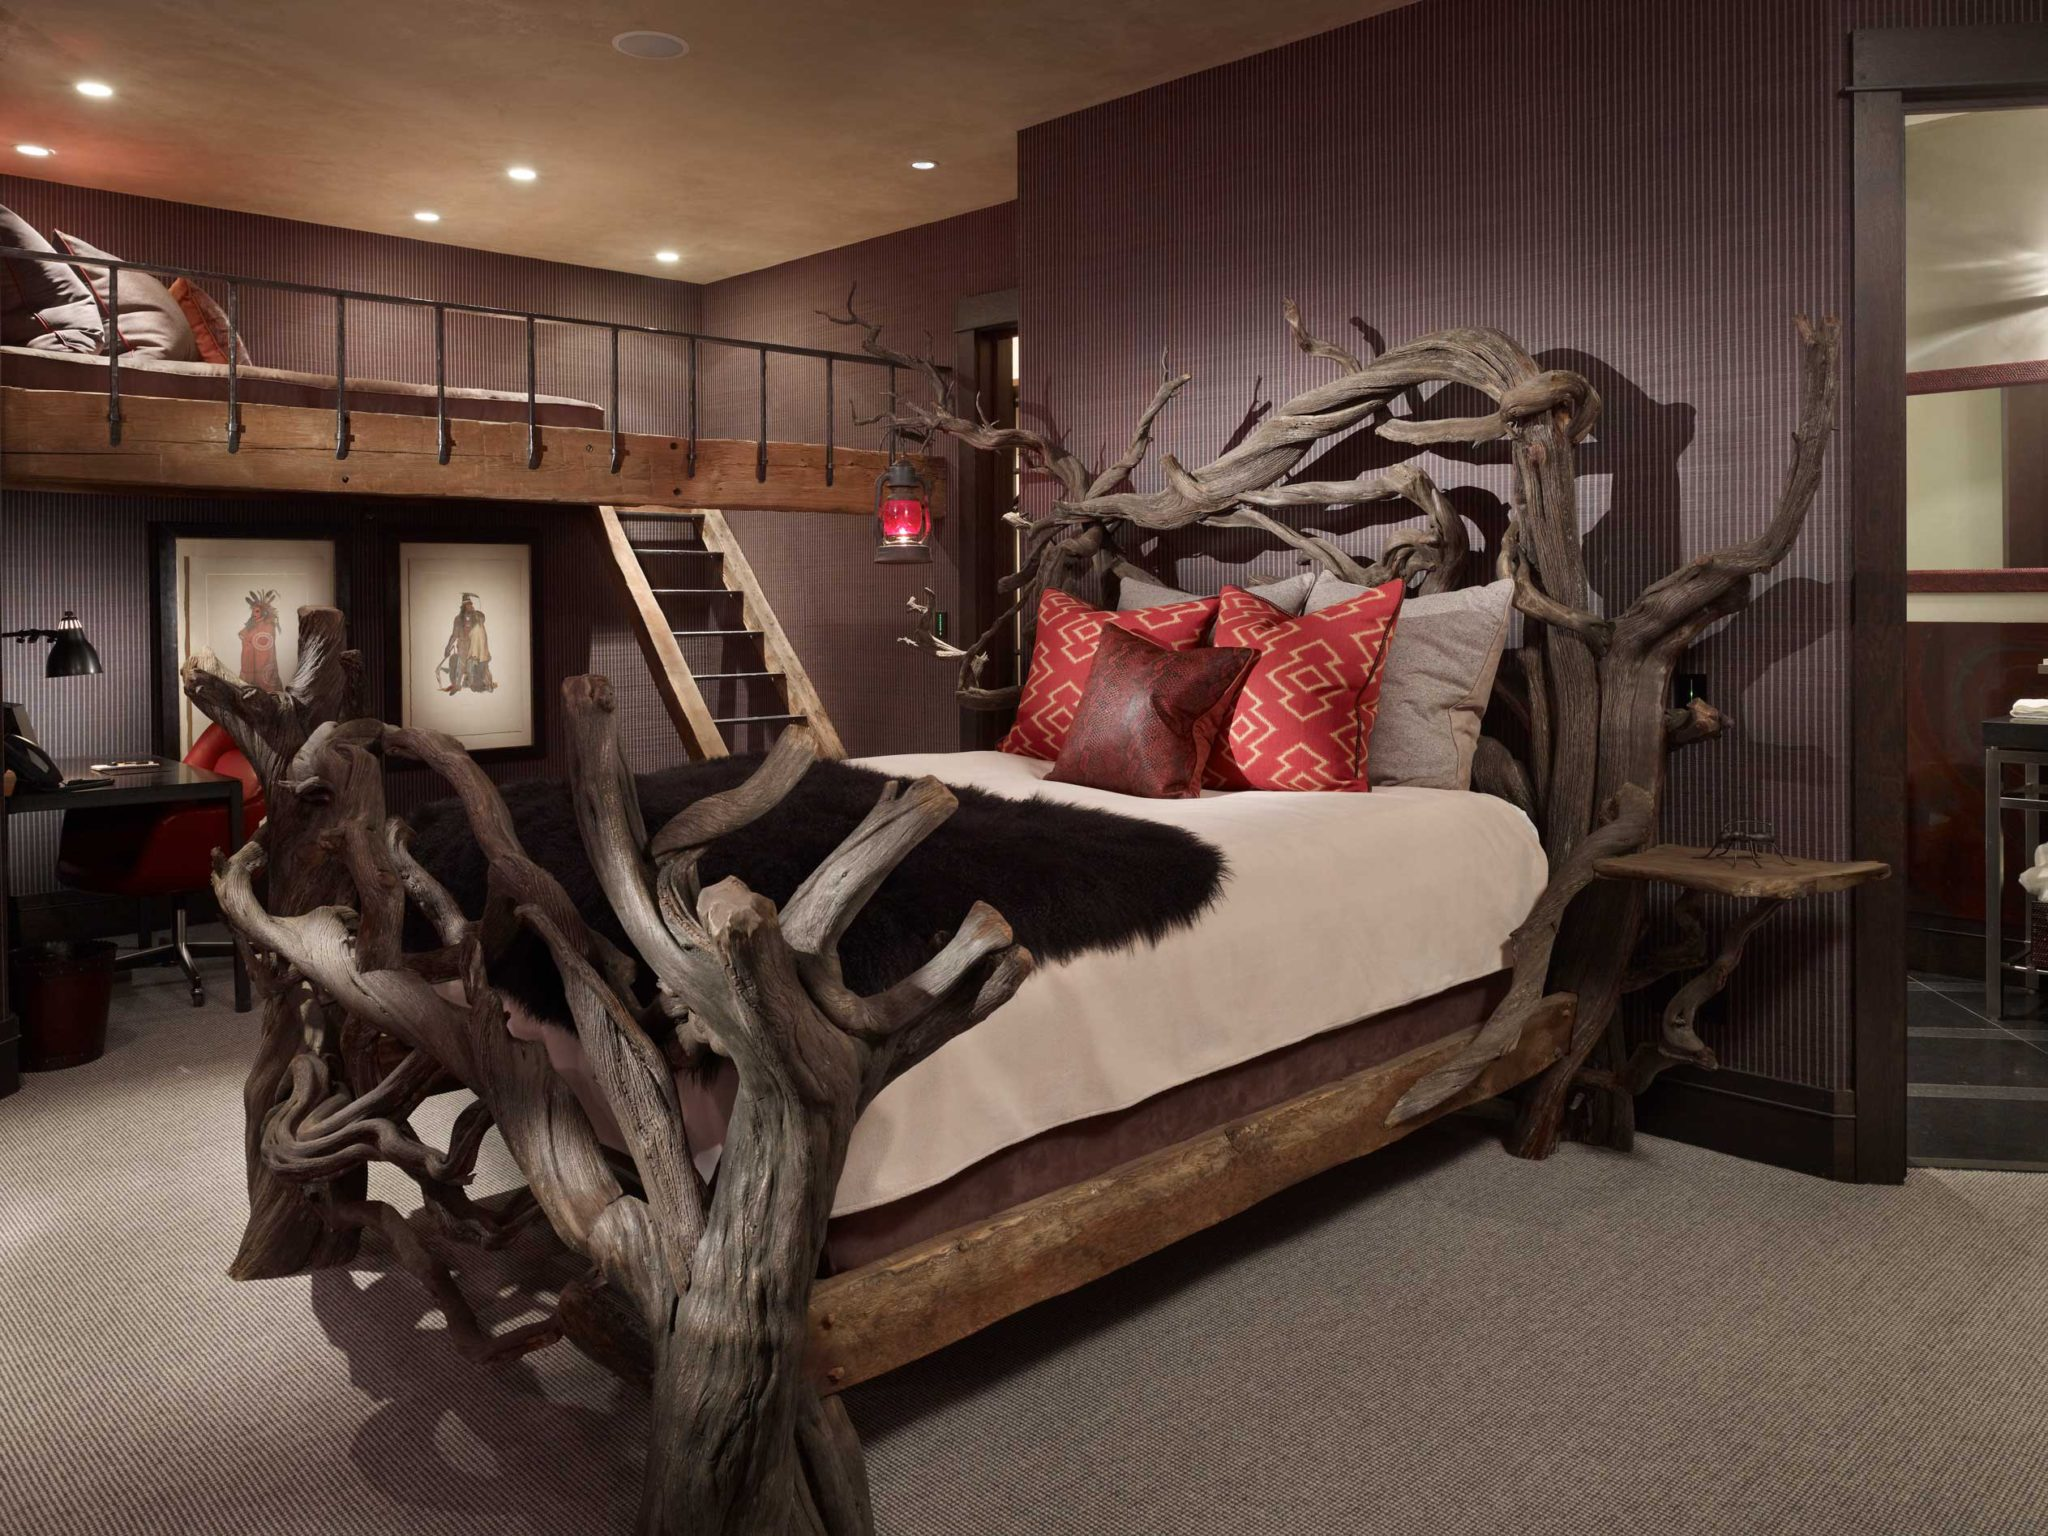 High Alpine Ranch residence - Yellowstone Club, MT - guest bedroom by LKID